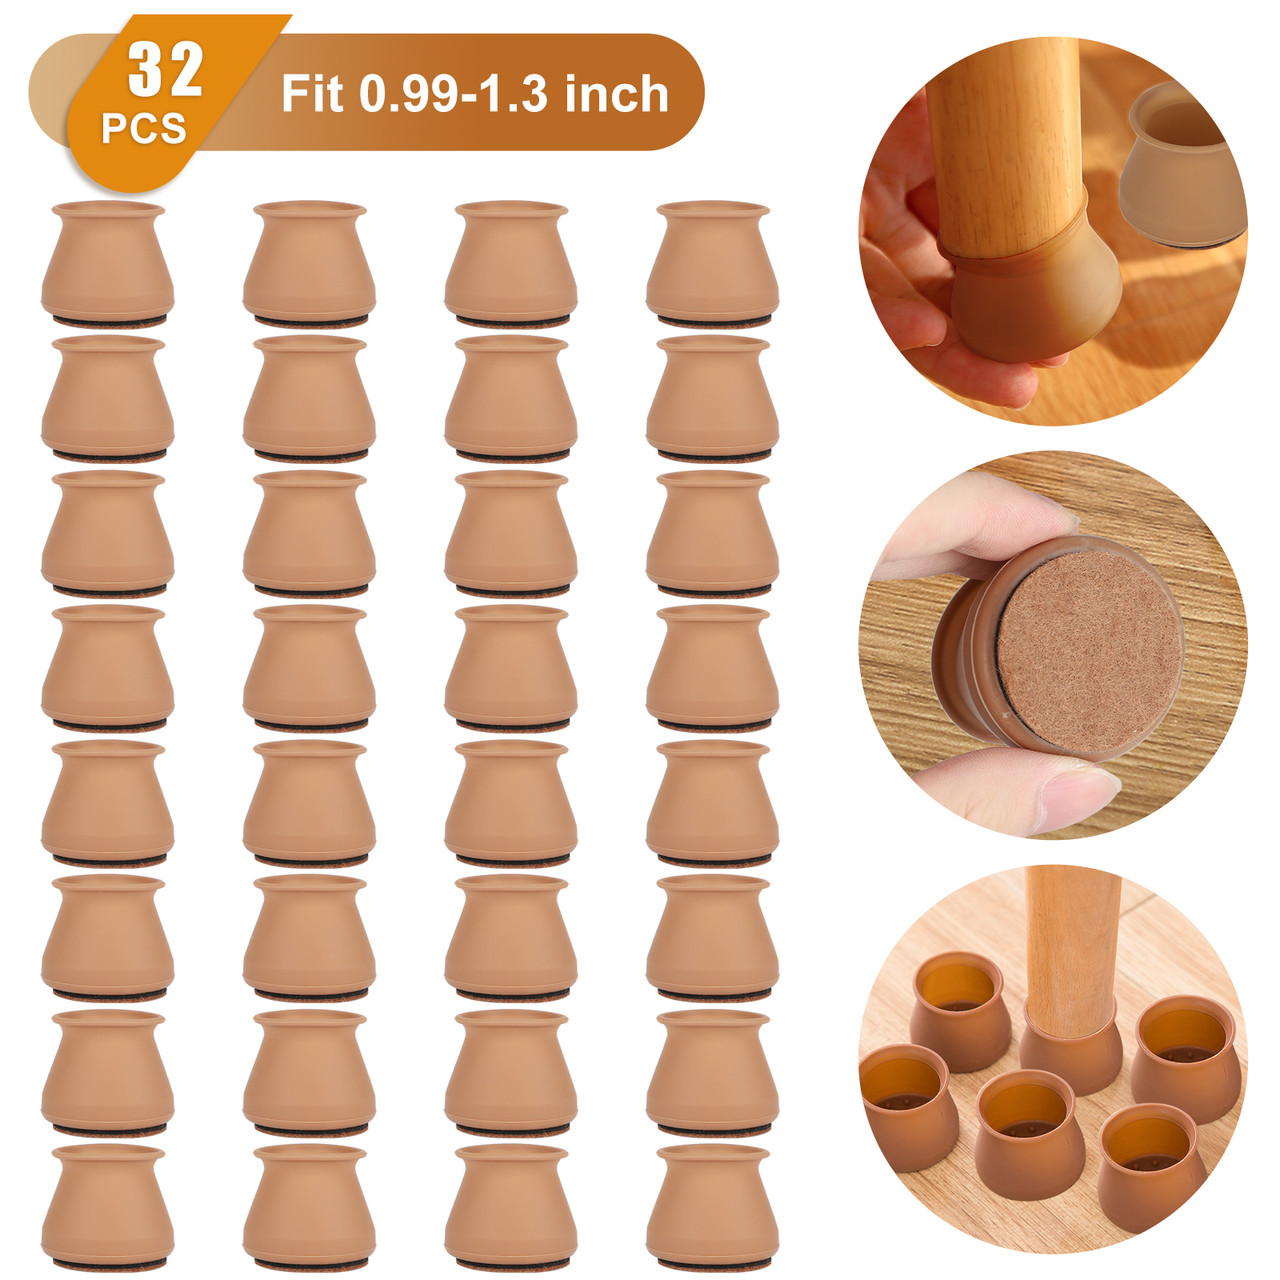 Details about  /32 Furniture Bottom Legs Cover Pads Anti-Slip Felt Chair Cushion Floor Protector